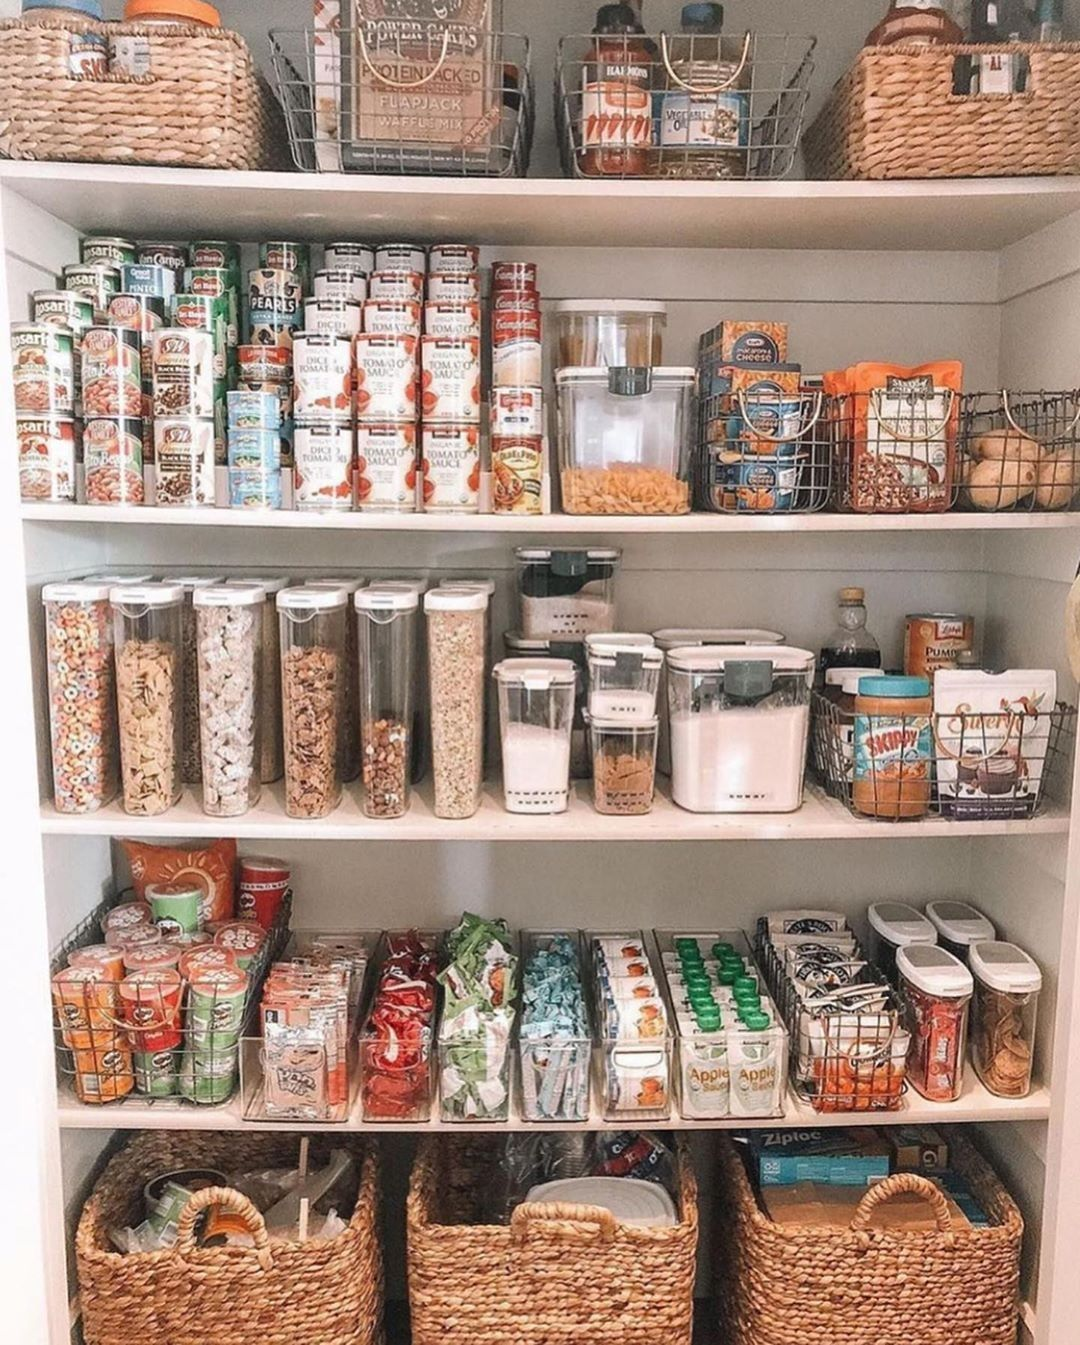 Does anyone else just get giddy when they see a pantry this organized? I cannot wait to get my Butler's pantry finished and organized! I cant install my uppers until the countertops are set but swipe for a sneak of the lowers! . . . source unknown dm for credit! #butlerspantry #pantryorganization #kitchendesign #modernfarmhouse #farmhousedesign #customhome #customdesign #dreamhome #designidea #makehomeyours #smmakelifebeautiful #interiordesign #f #pantryorganizationideas